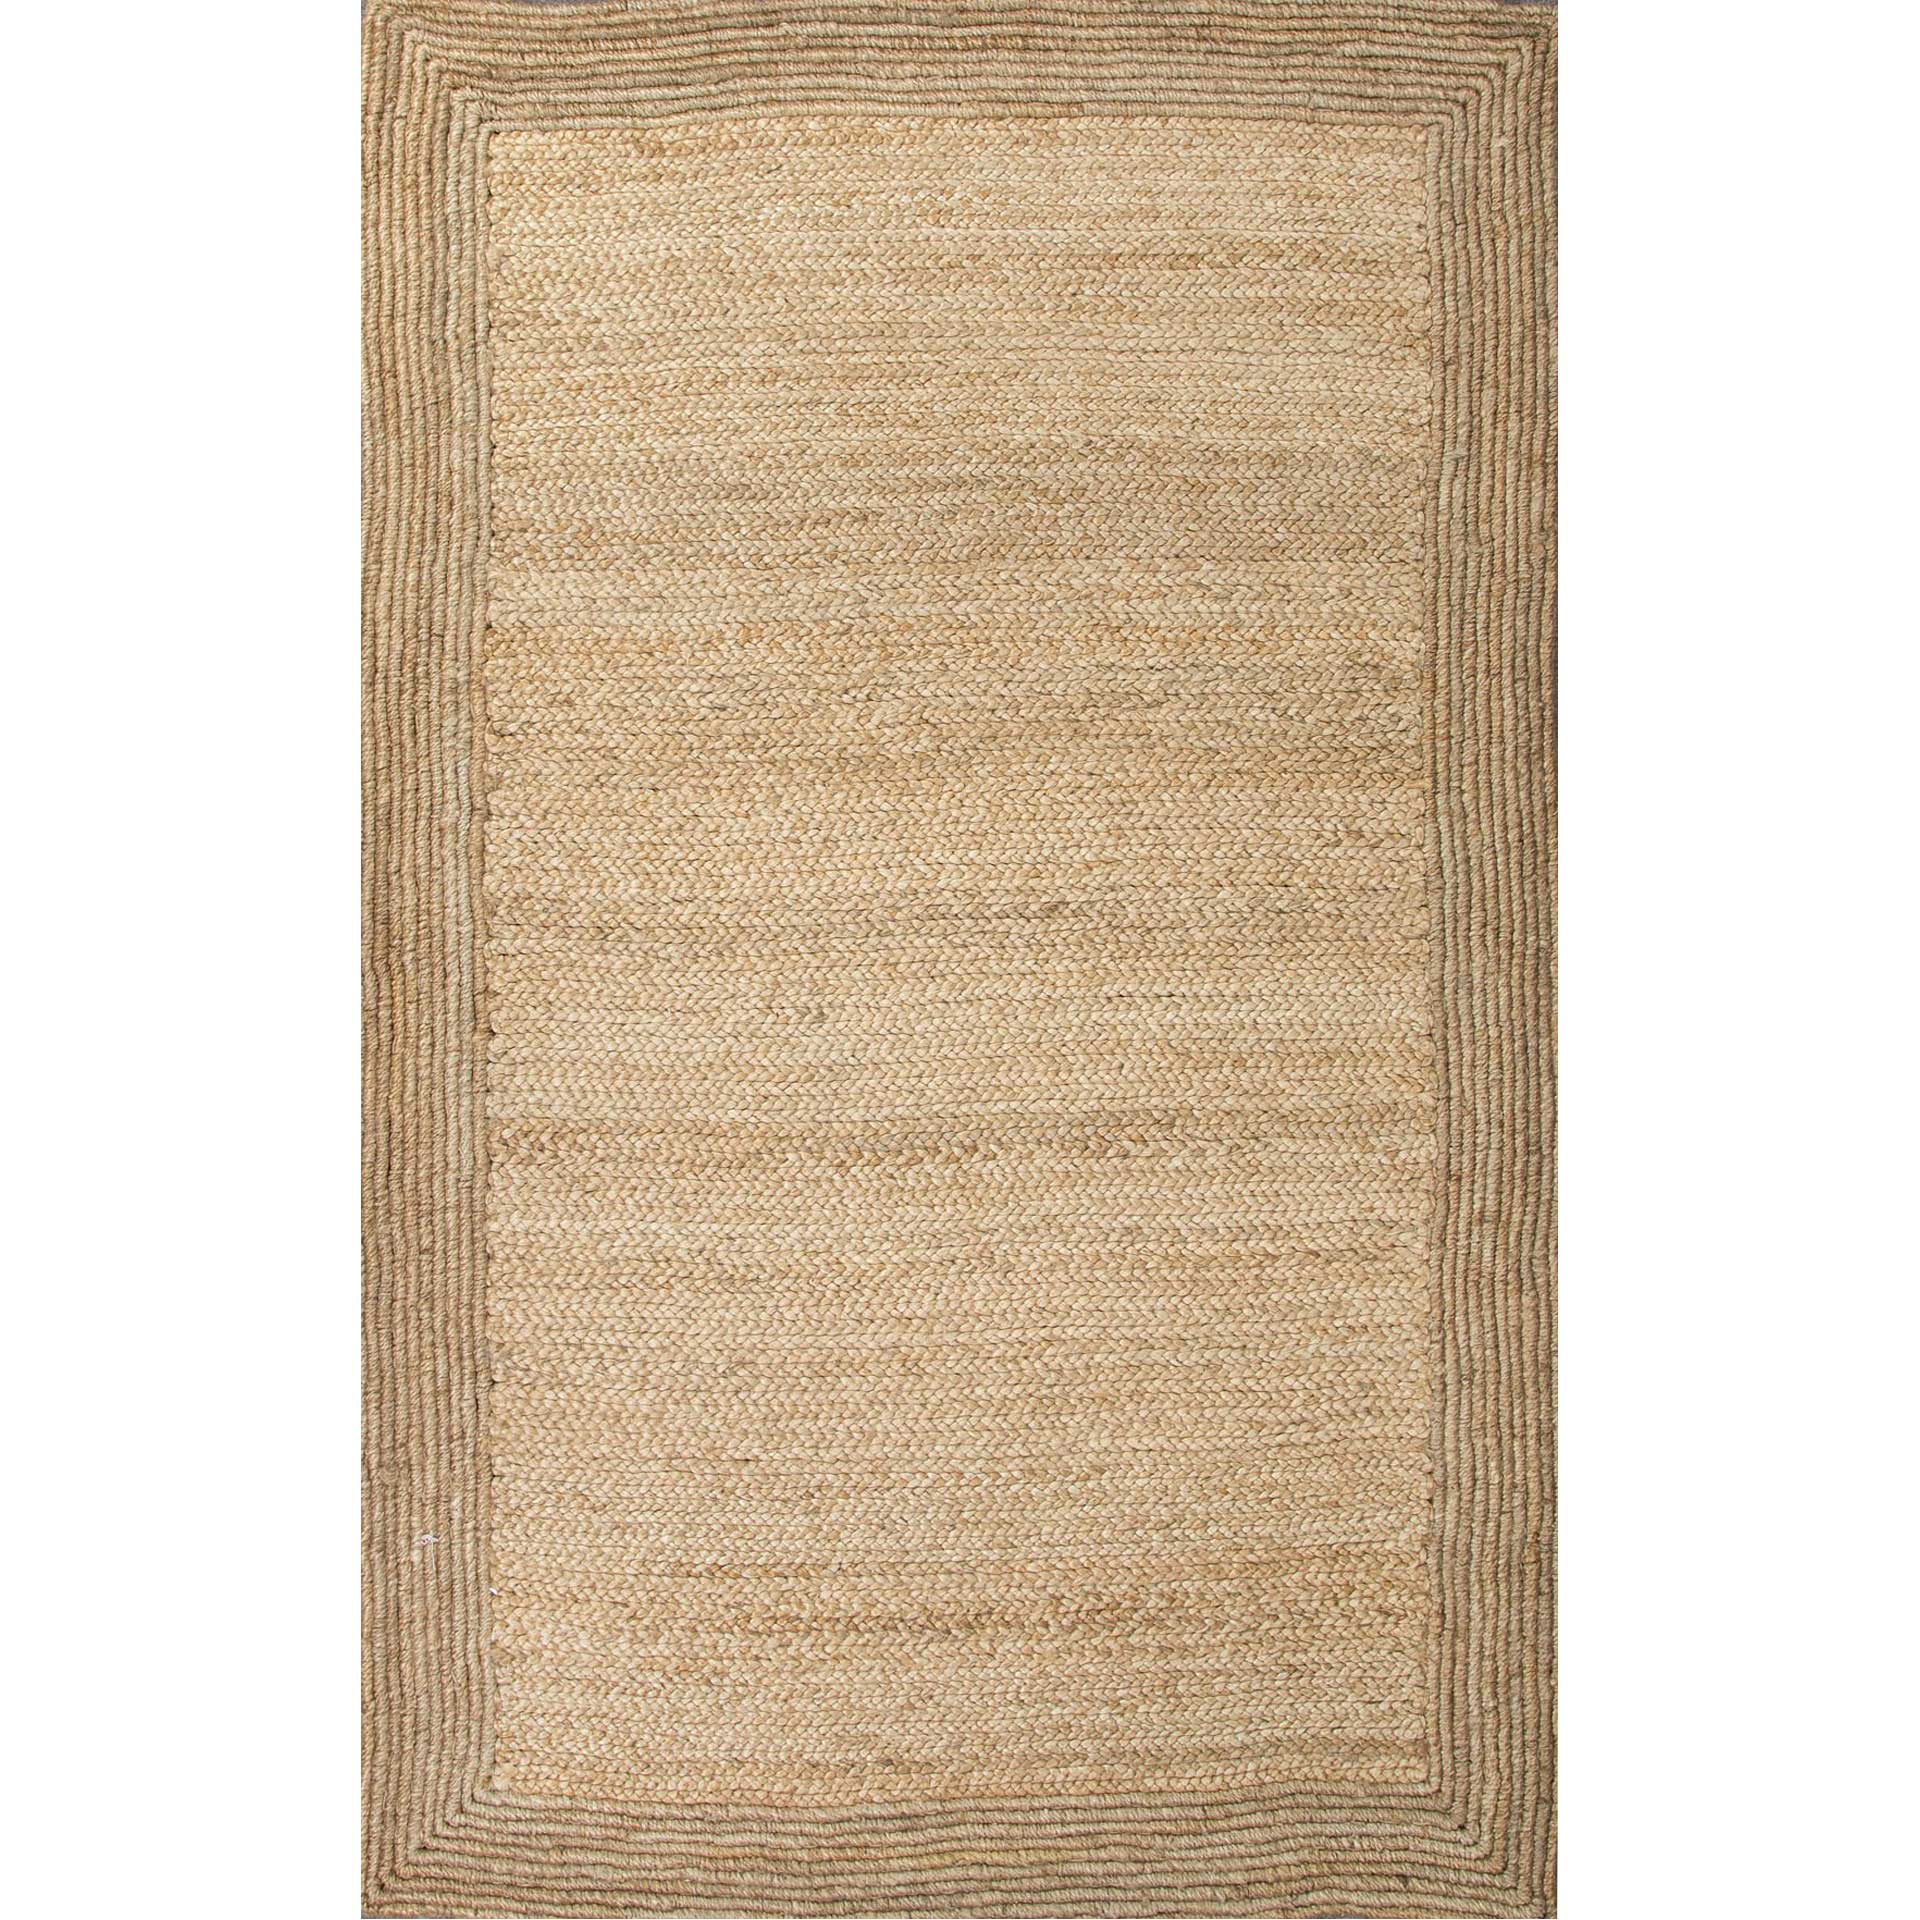 Naturals Aboo Natural Silver Area Rug